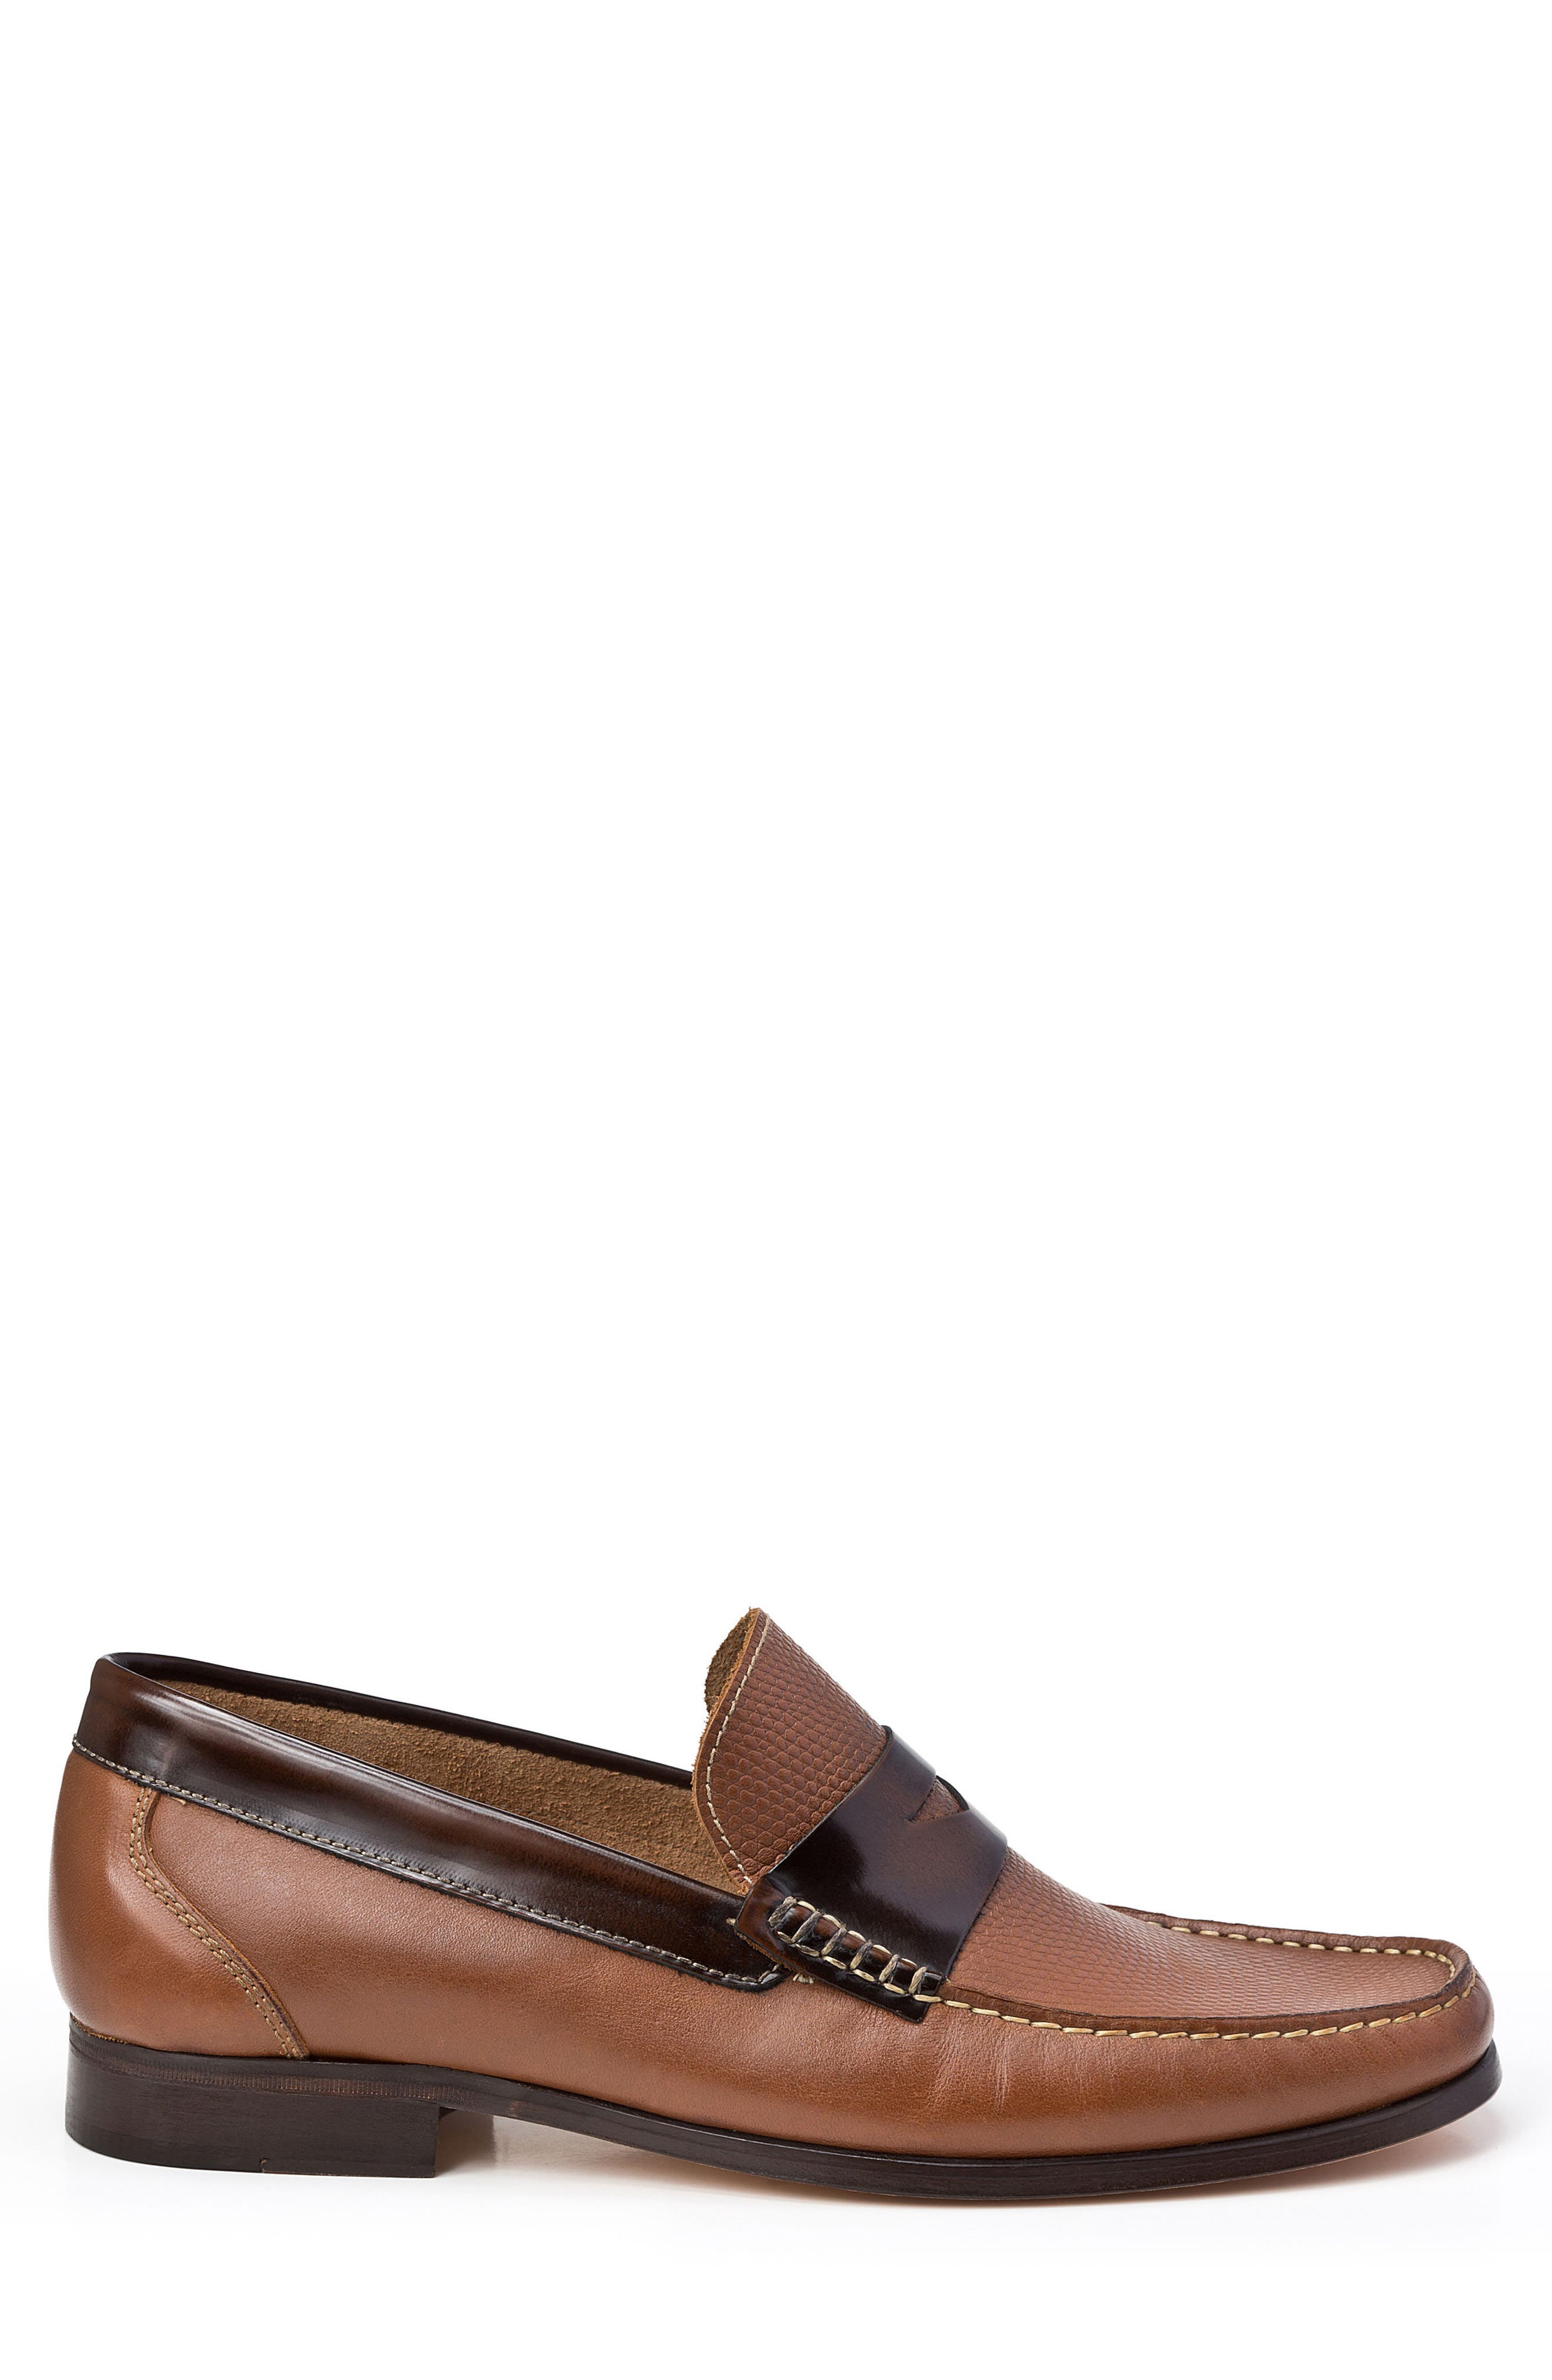 Bilbao Pebble Embossed Penny Loafer,                             Alternate thumbnail 3, color,                             Tan